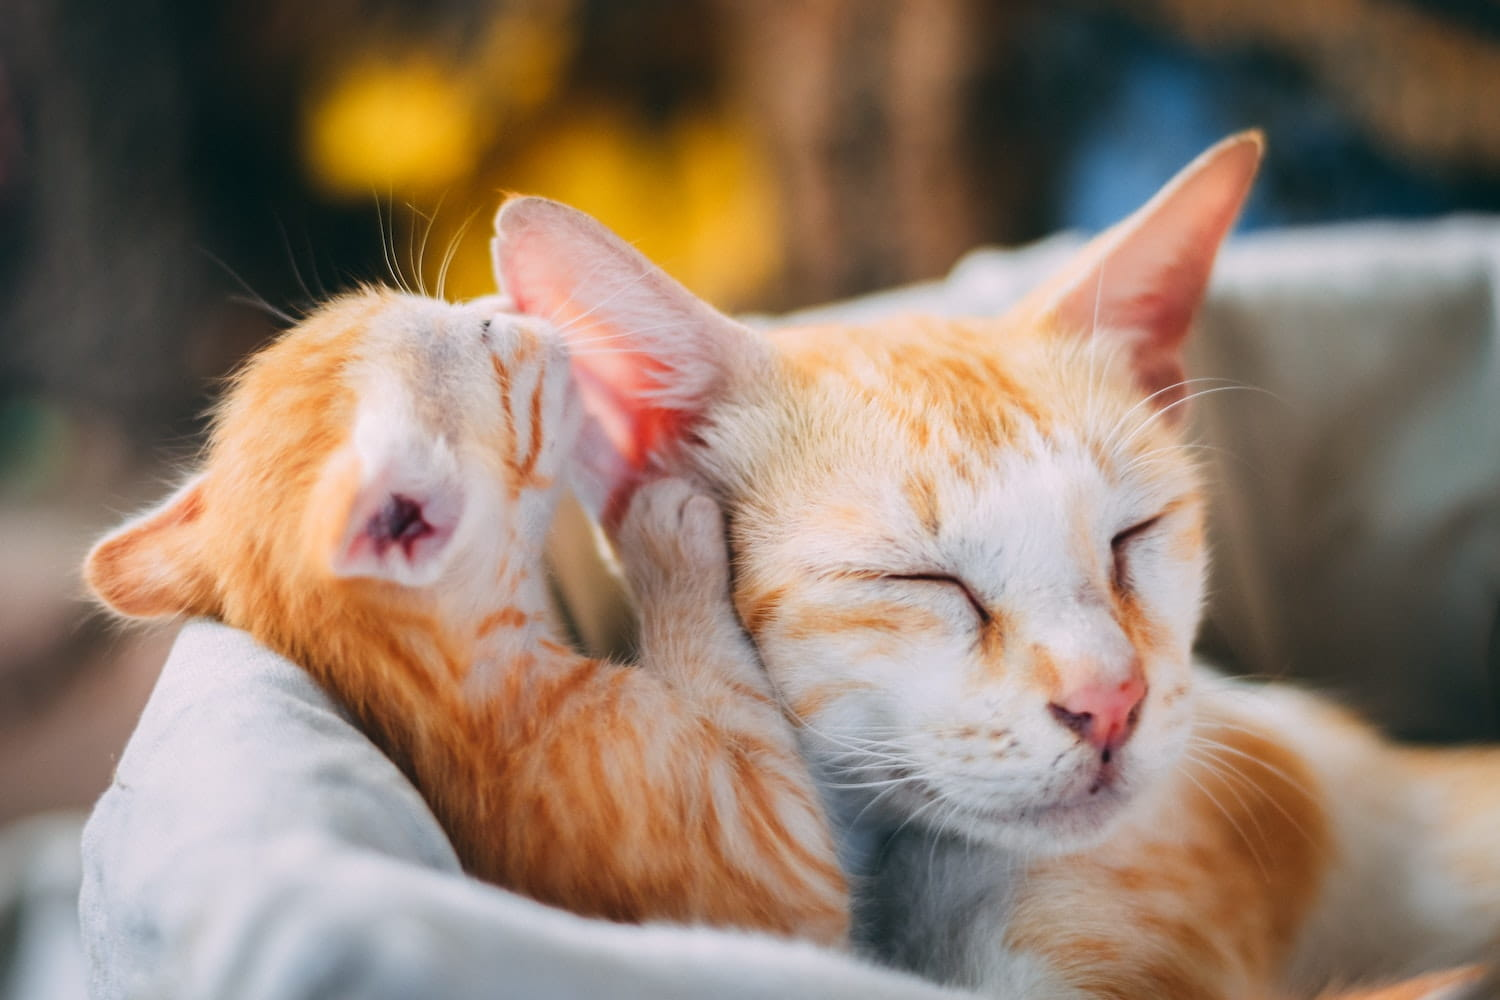 A cat and a kitten snuggled in bed